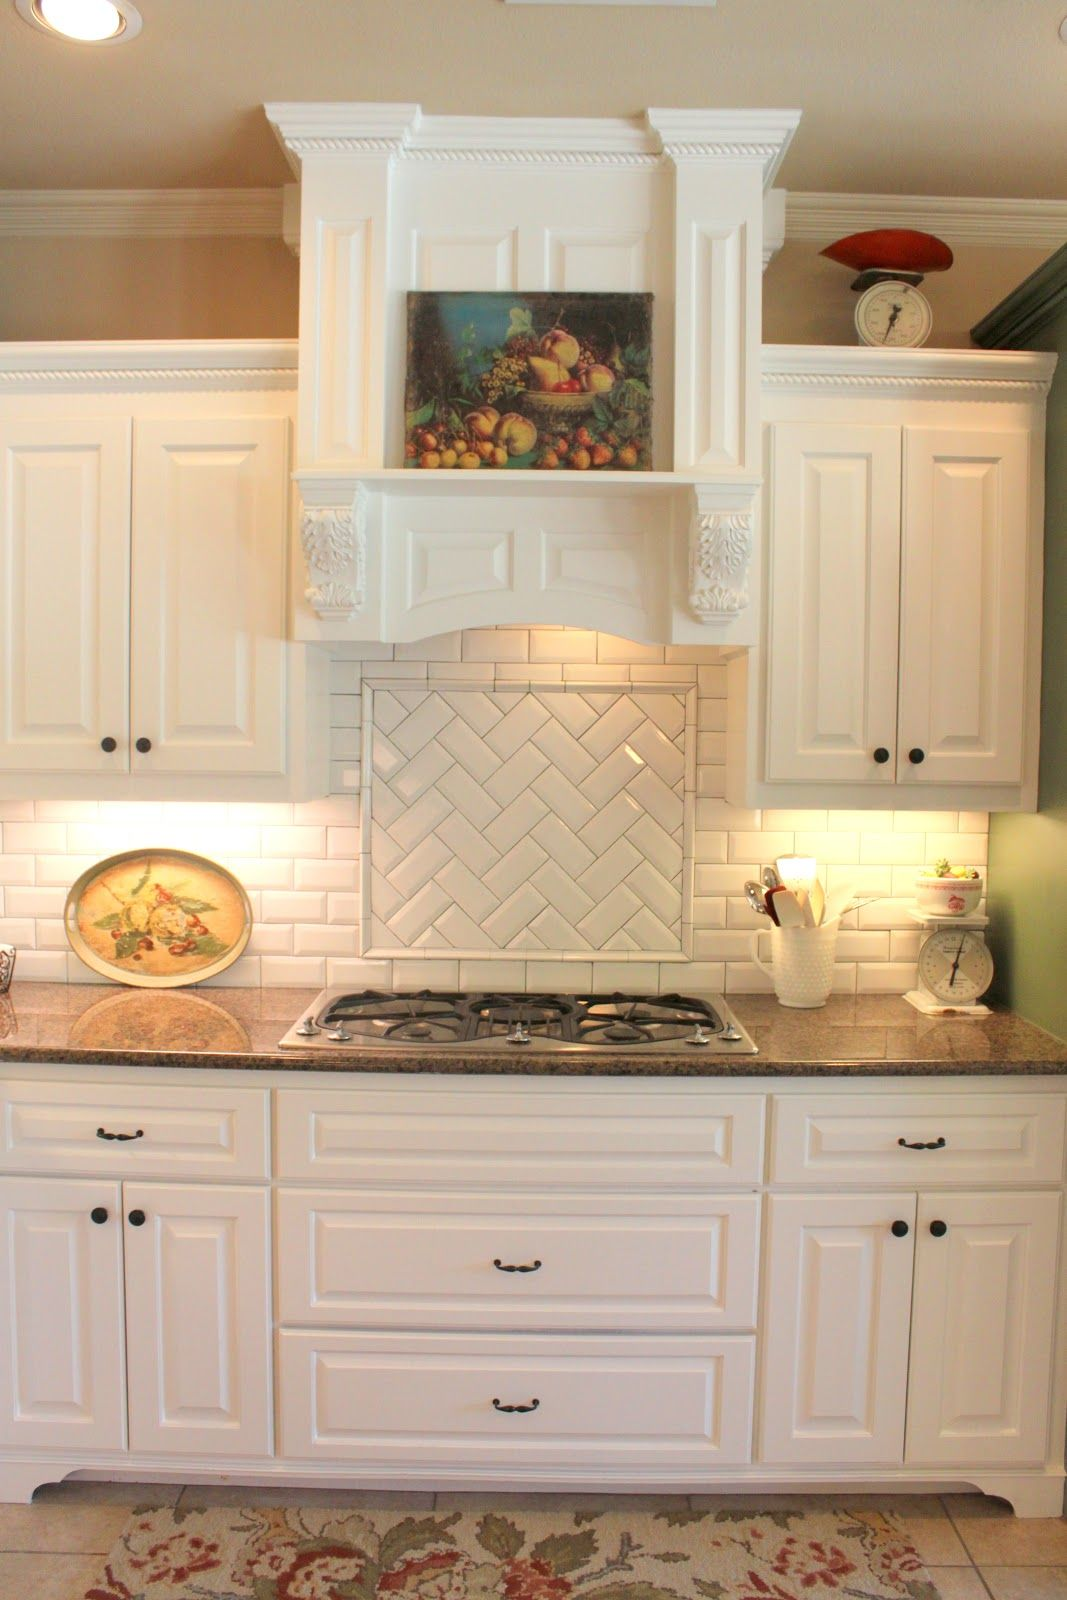 Framed Square Catchy Herringbone Backsplash Accent Tiling Using Matte White Trendy Kitchen Backsplash Kitchen Backsplash Designs Backsplash For White Cabinets